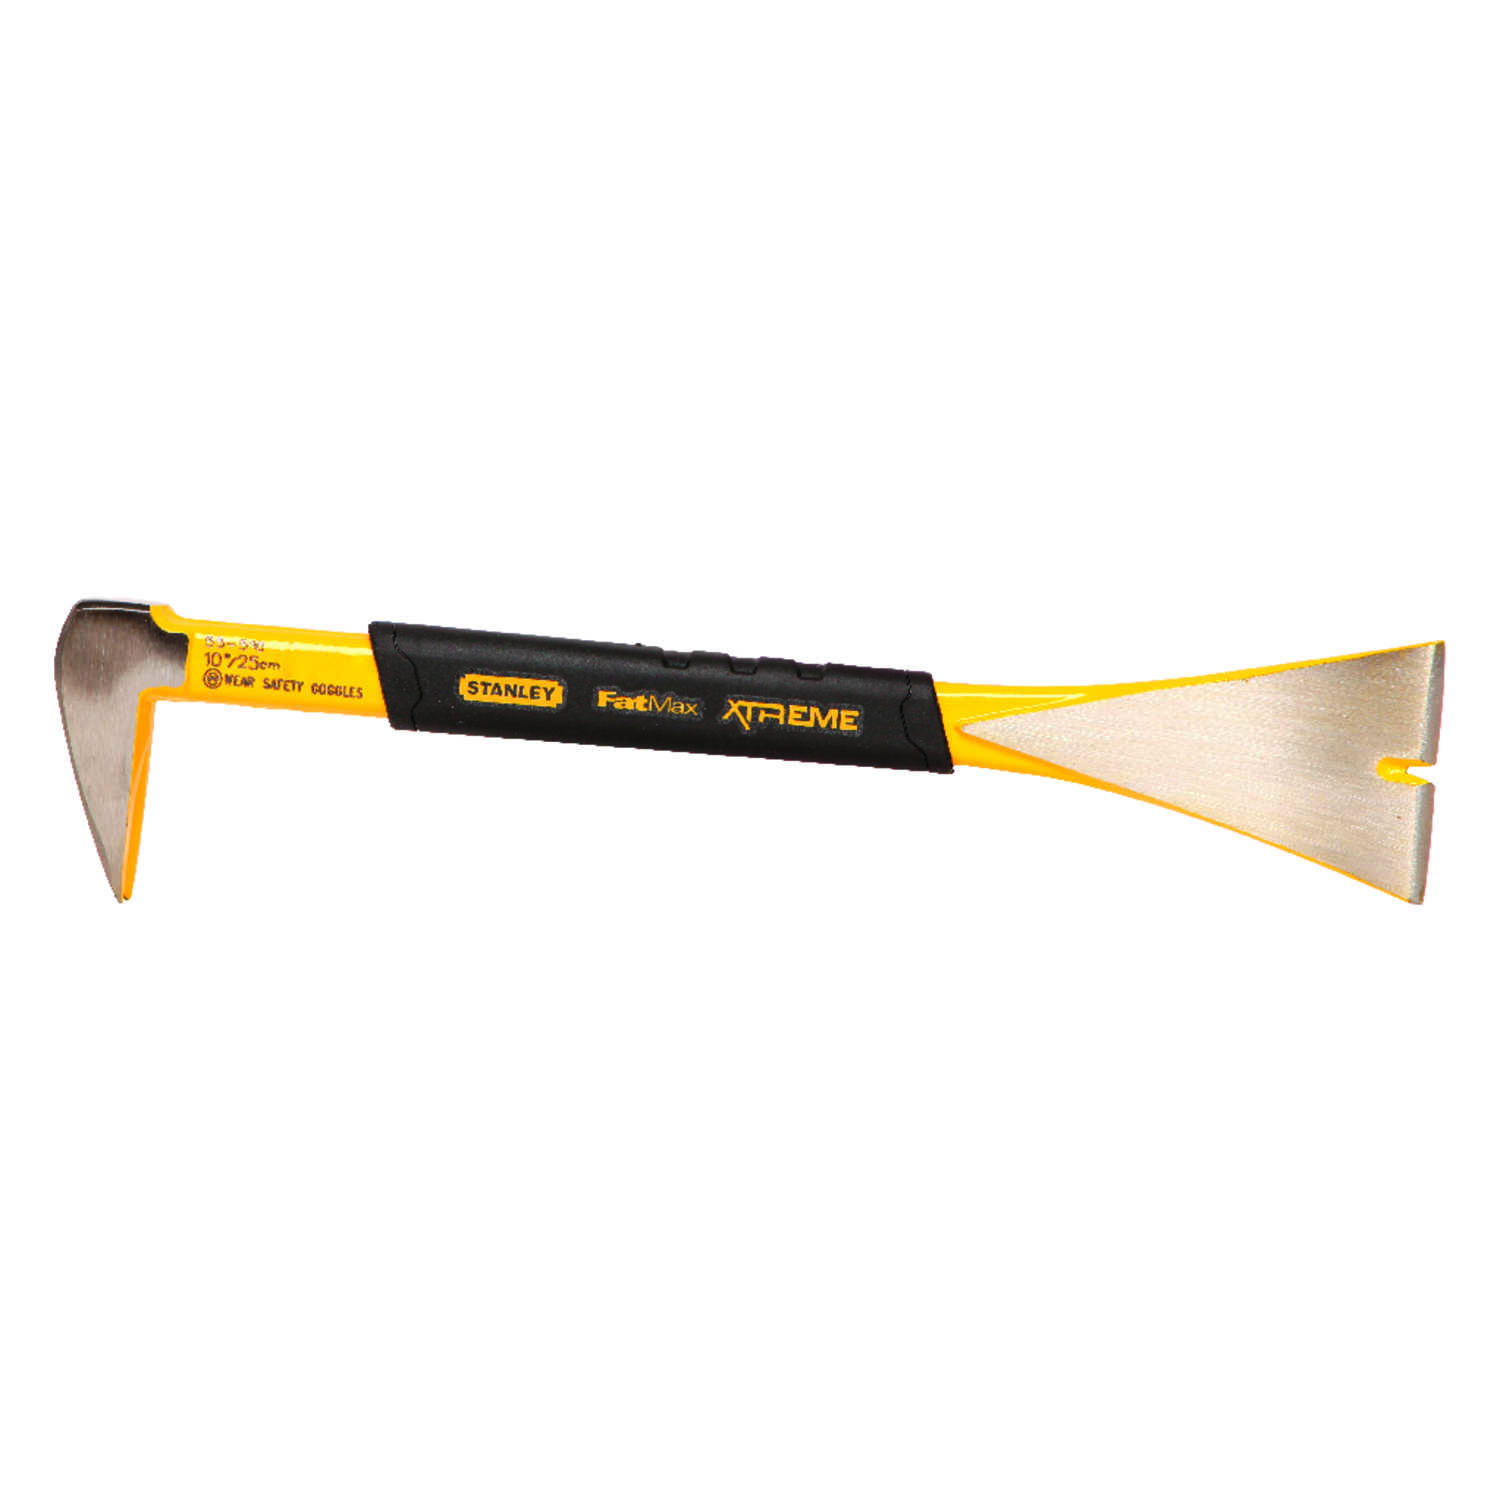 Stanley  10 in. L x 1-3/4 in. W Forged Steel  Molding Bar  Yellow  1 pc.